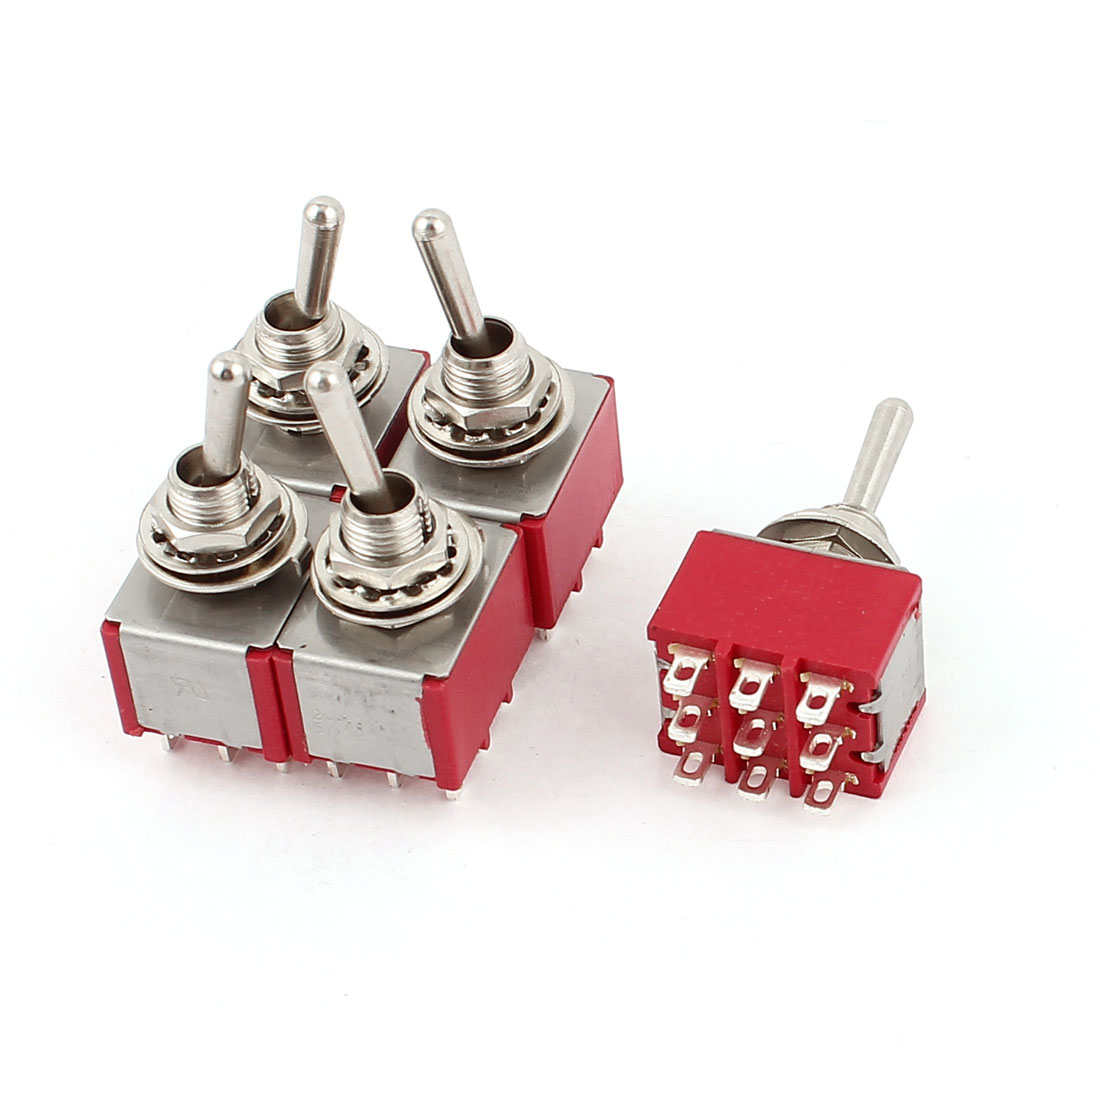 Car Truck ATV Airplane ON-ON 9 Pins Toggle Switch AC 250V/2A 120V/5A 5pcs